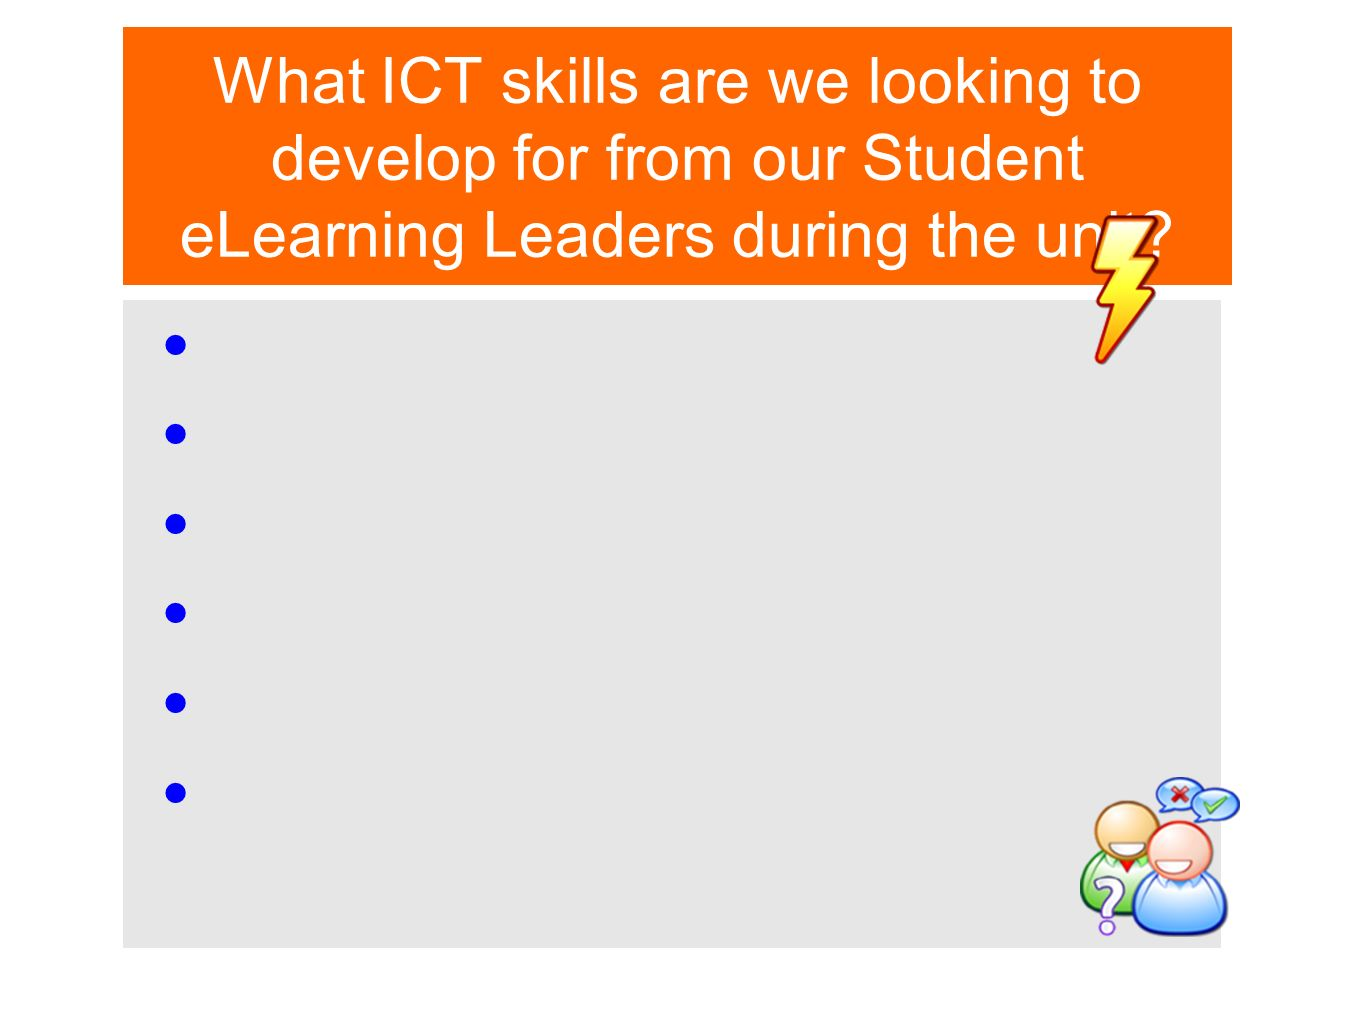 What ICT skills are we looking to develop for from our Student eLearning Leaders during the unit?